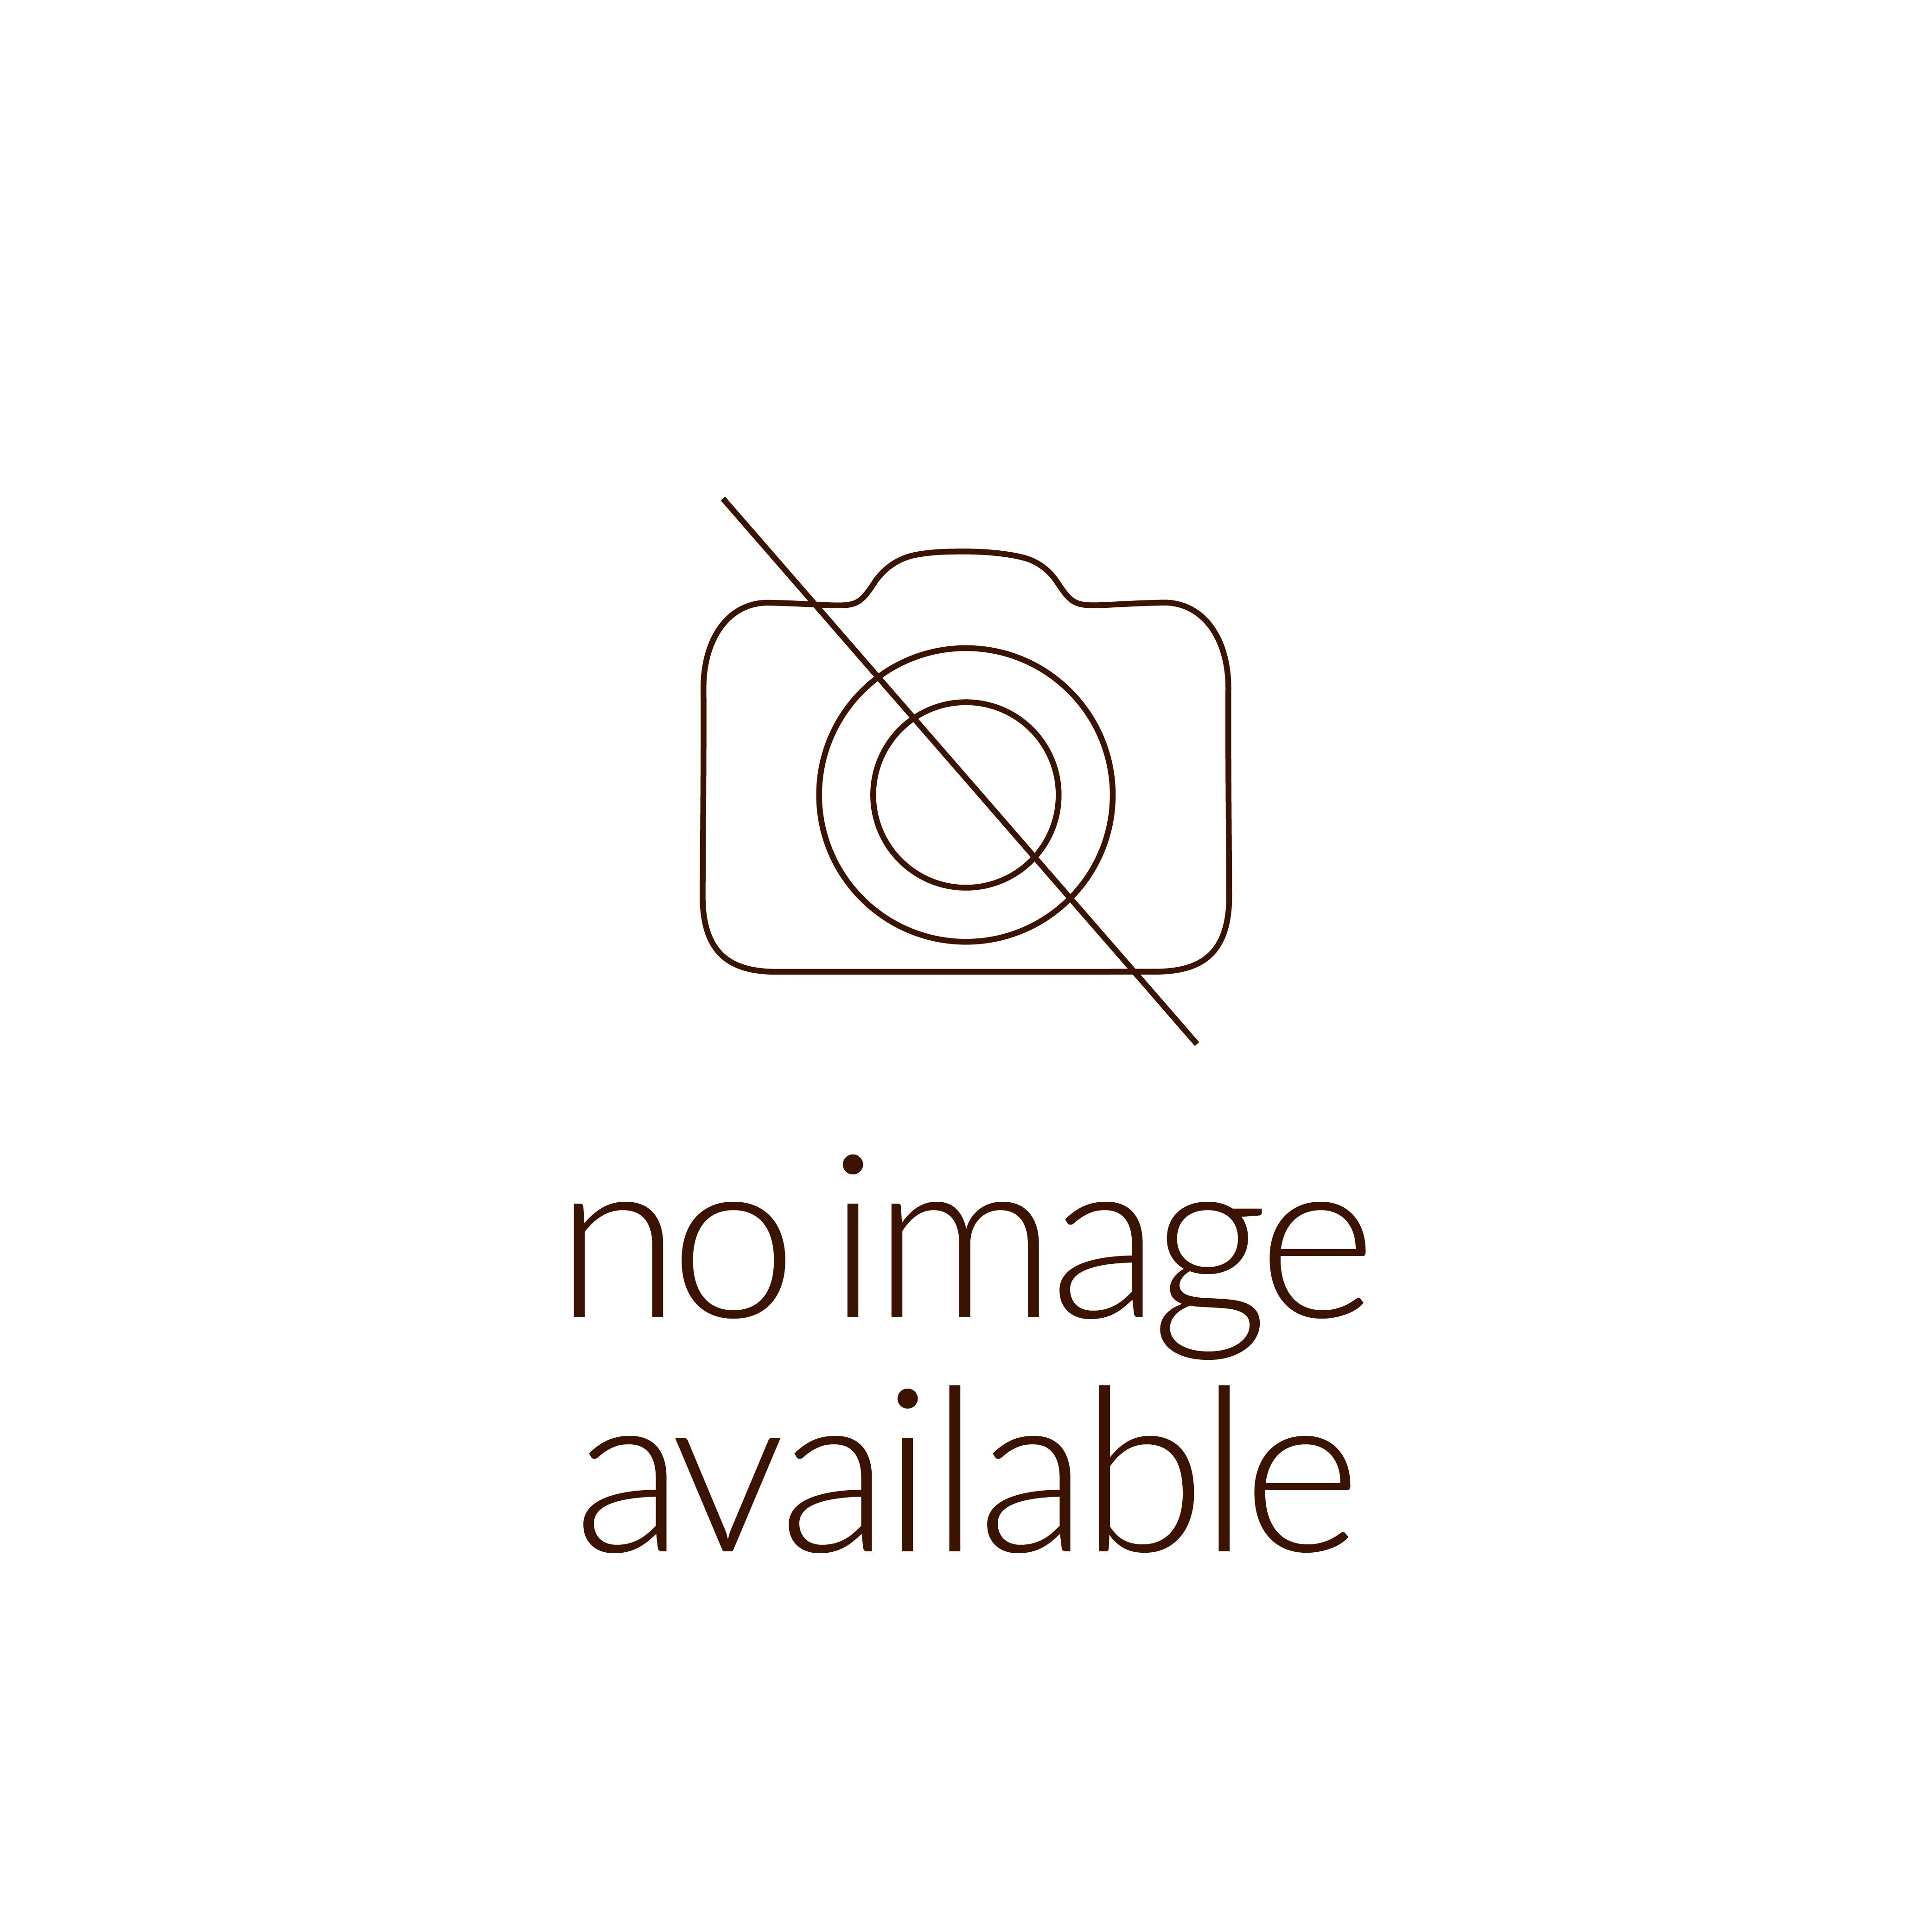 Banknotes Of The Landscapes Series Set